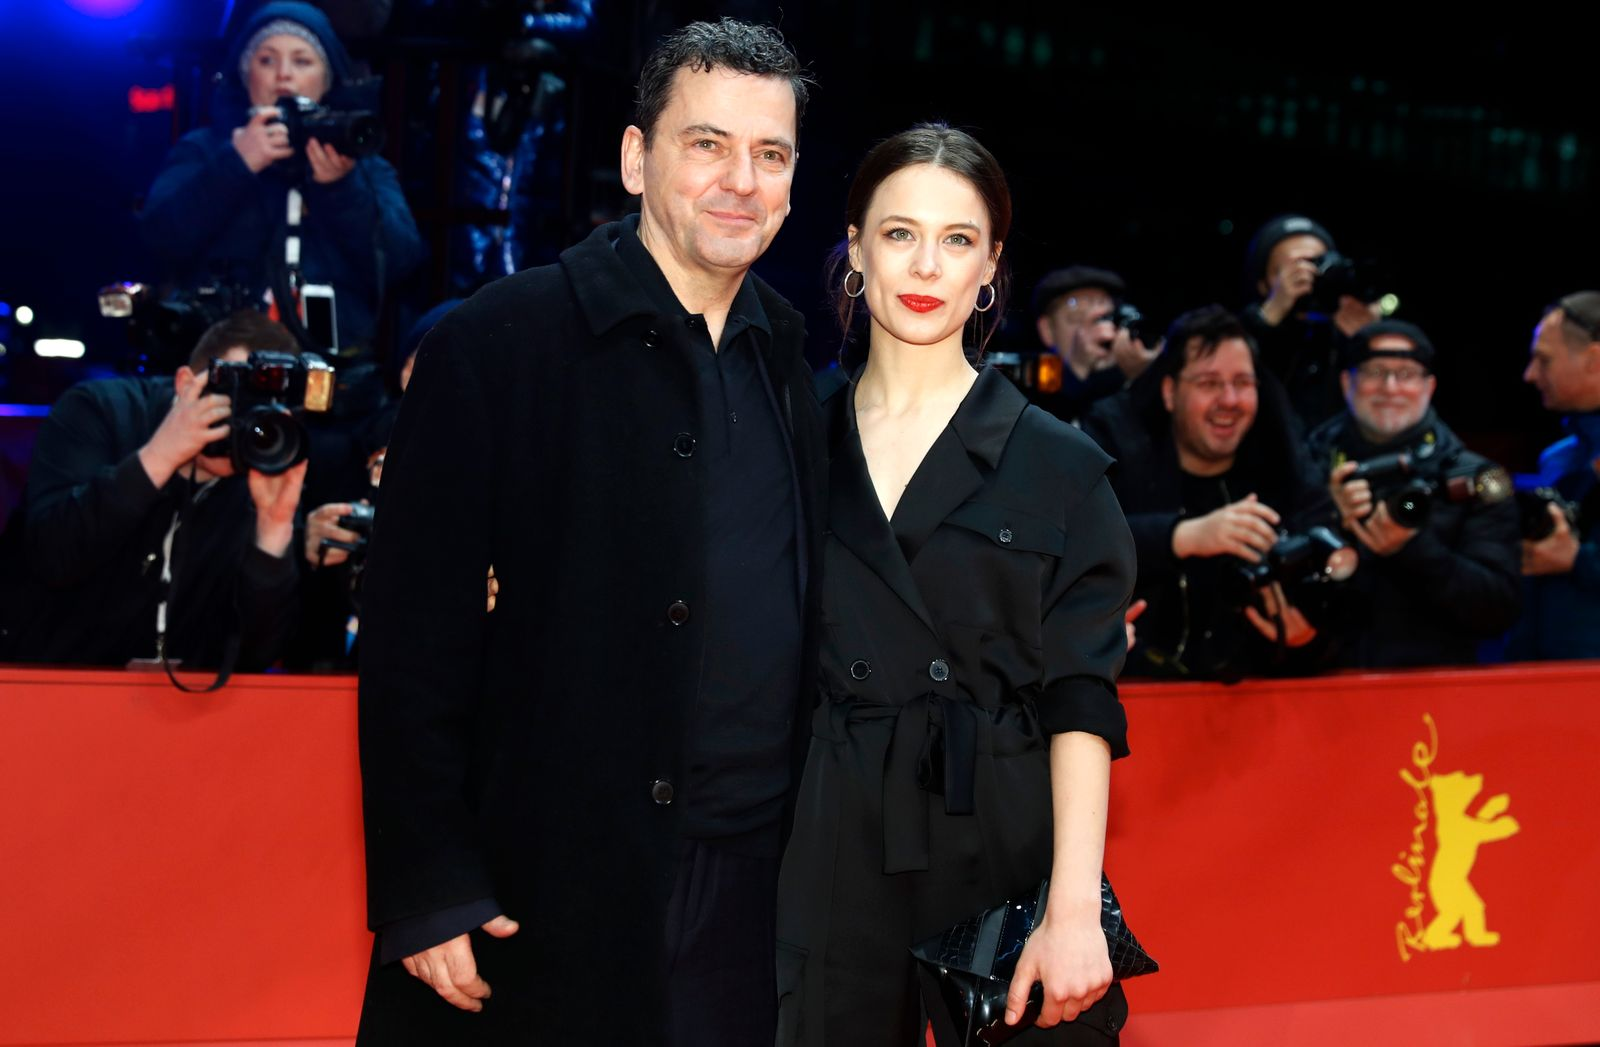 70th Berlinale International Film Festival in Berlin